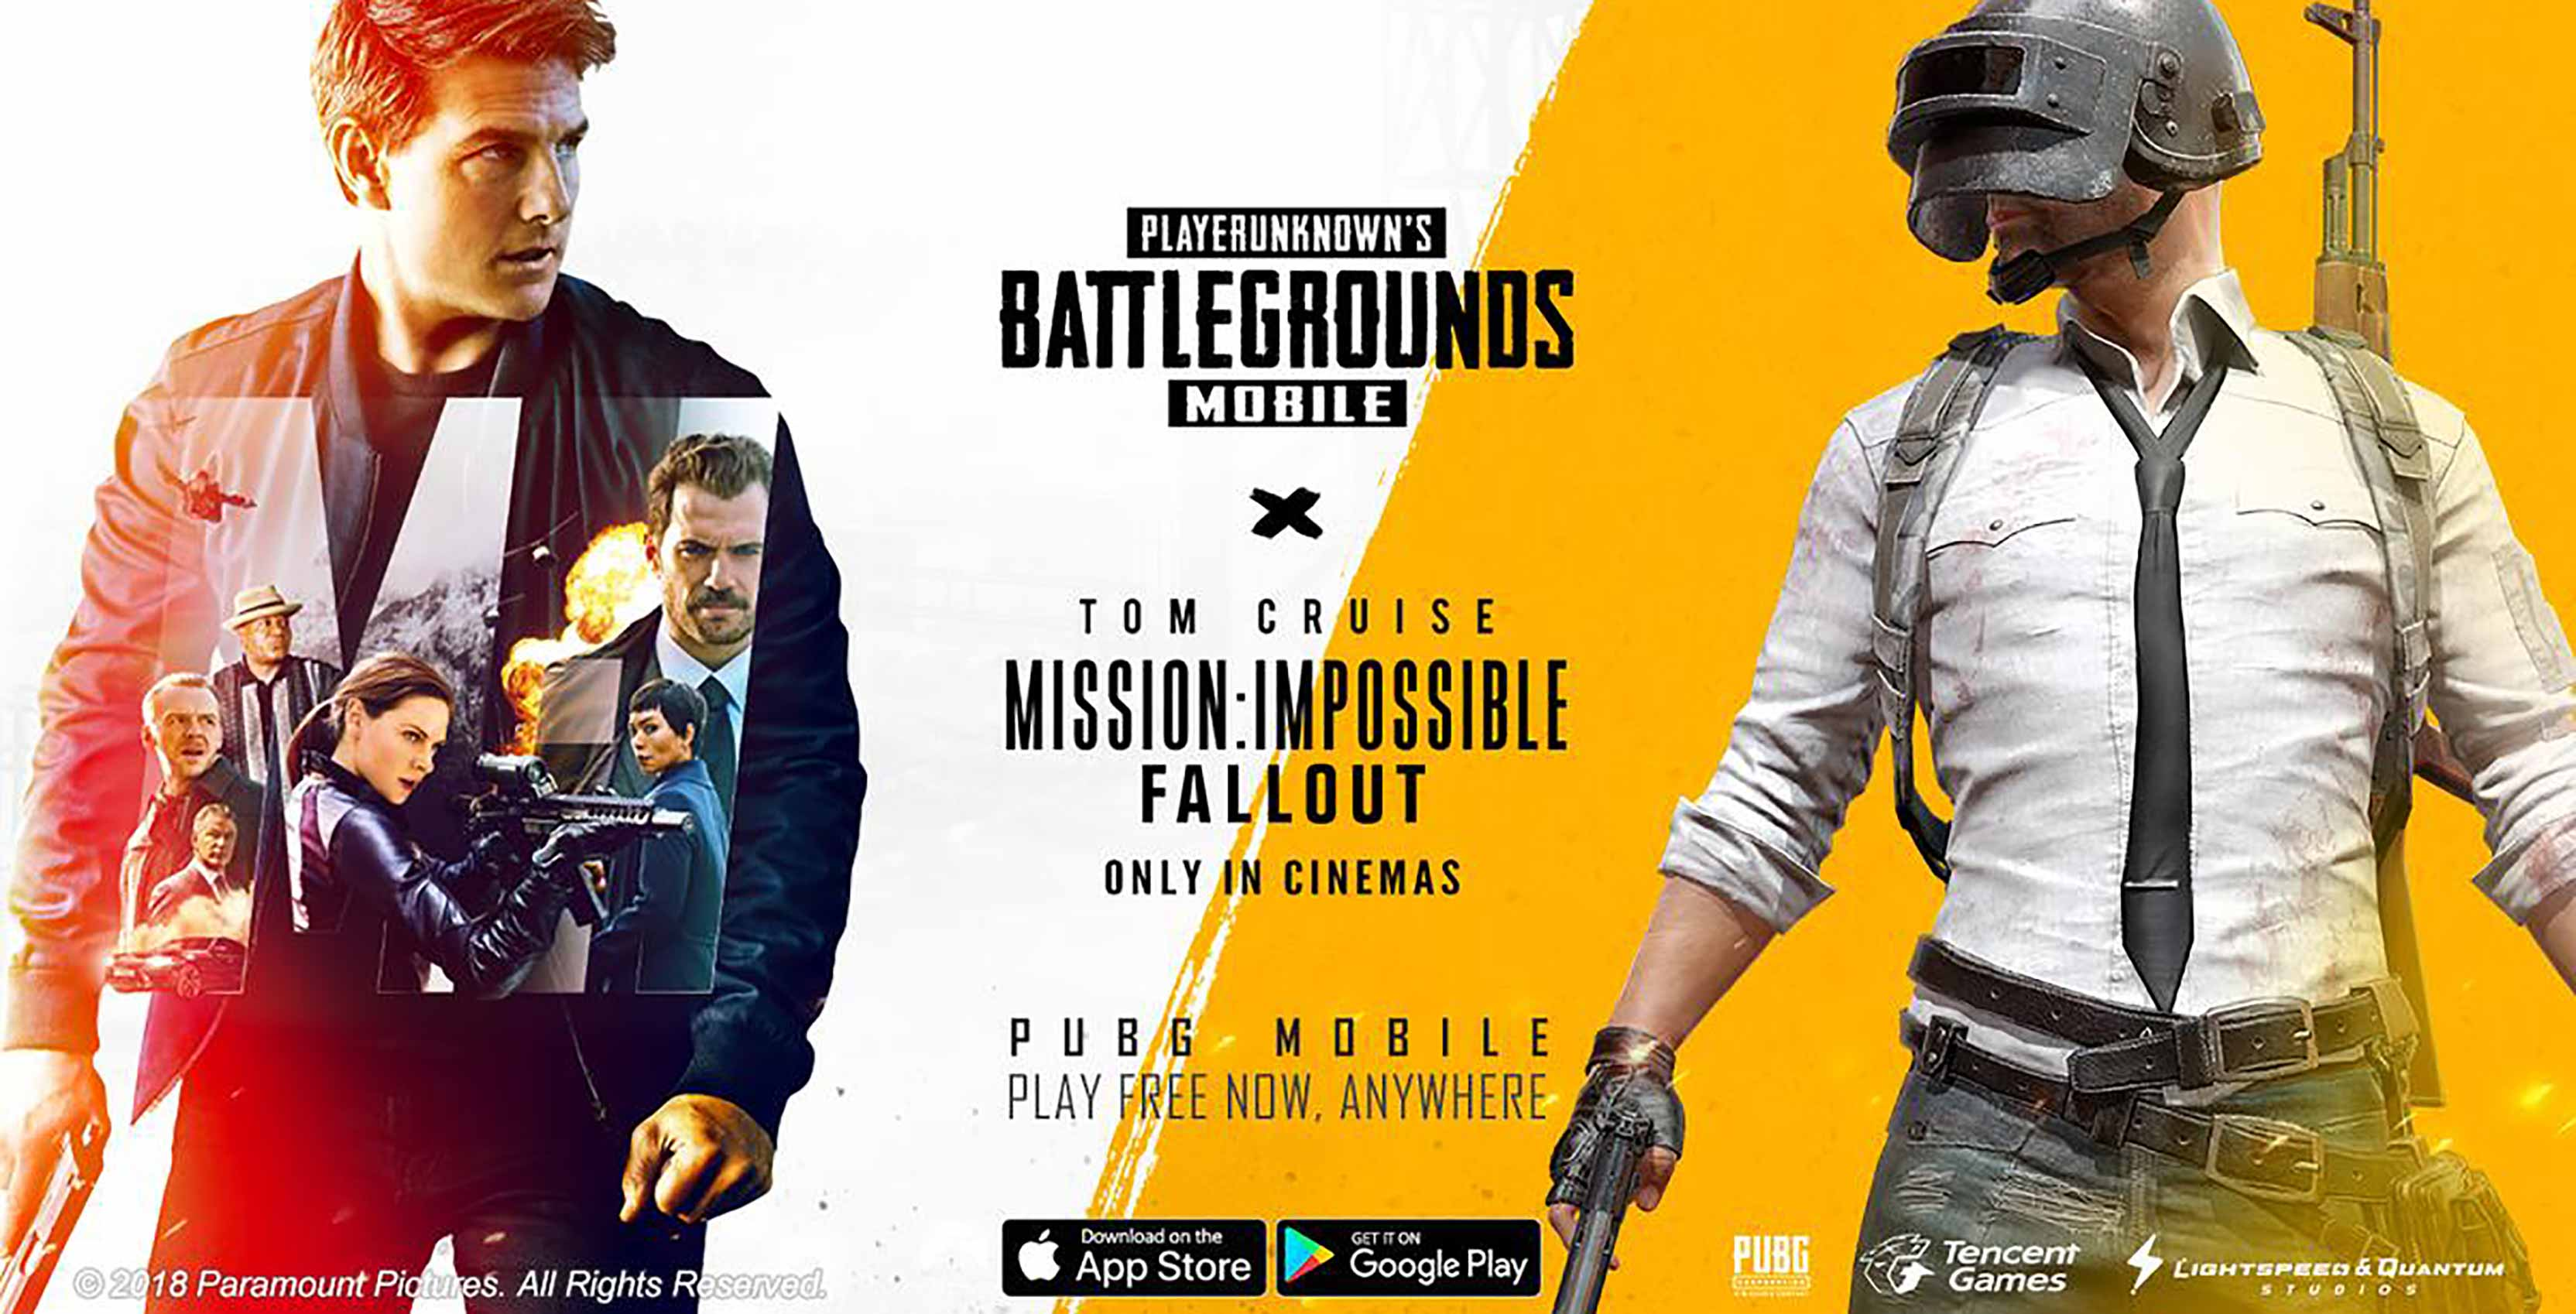 Mission: Impossible PUBG Mobile event